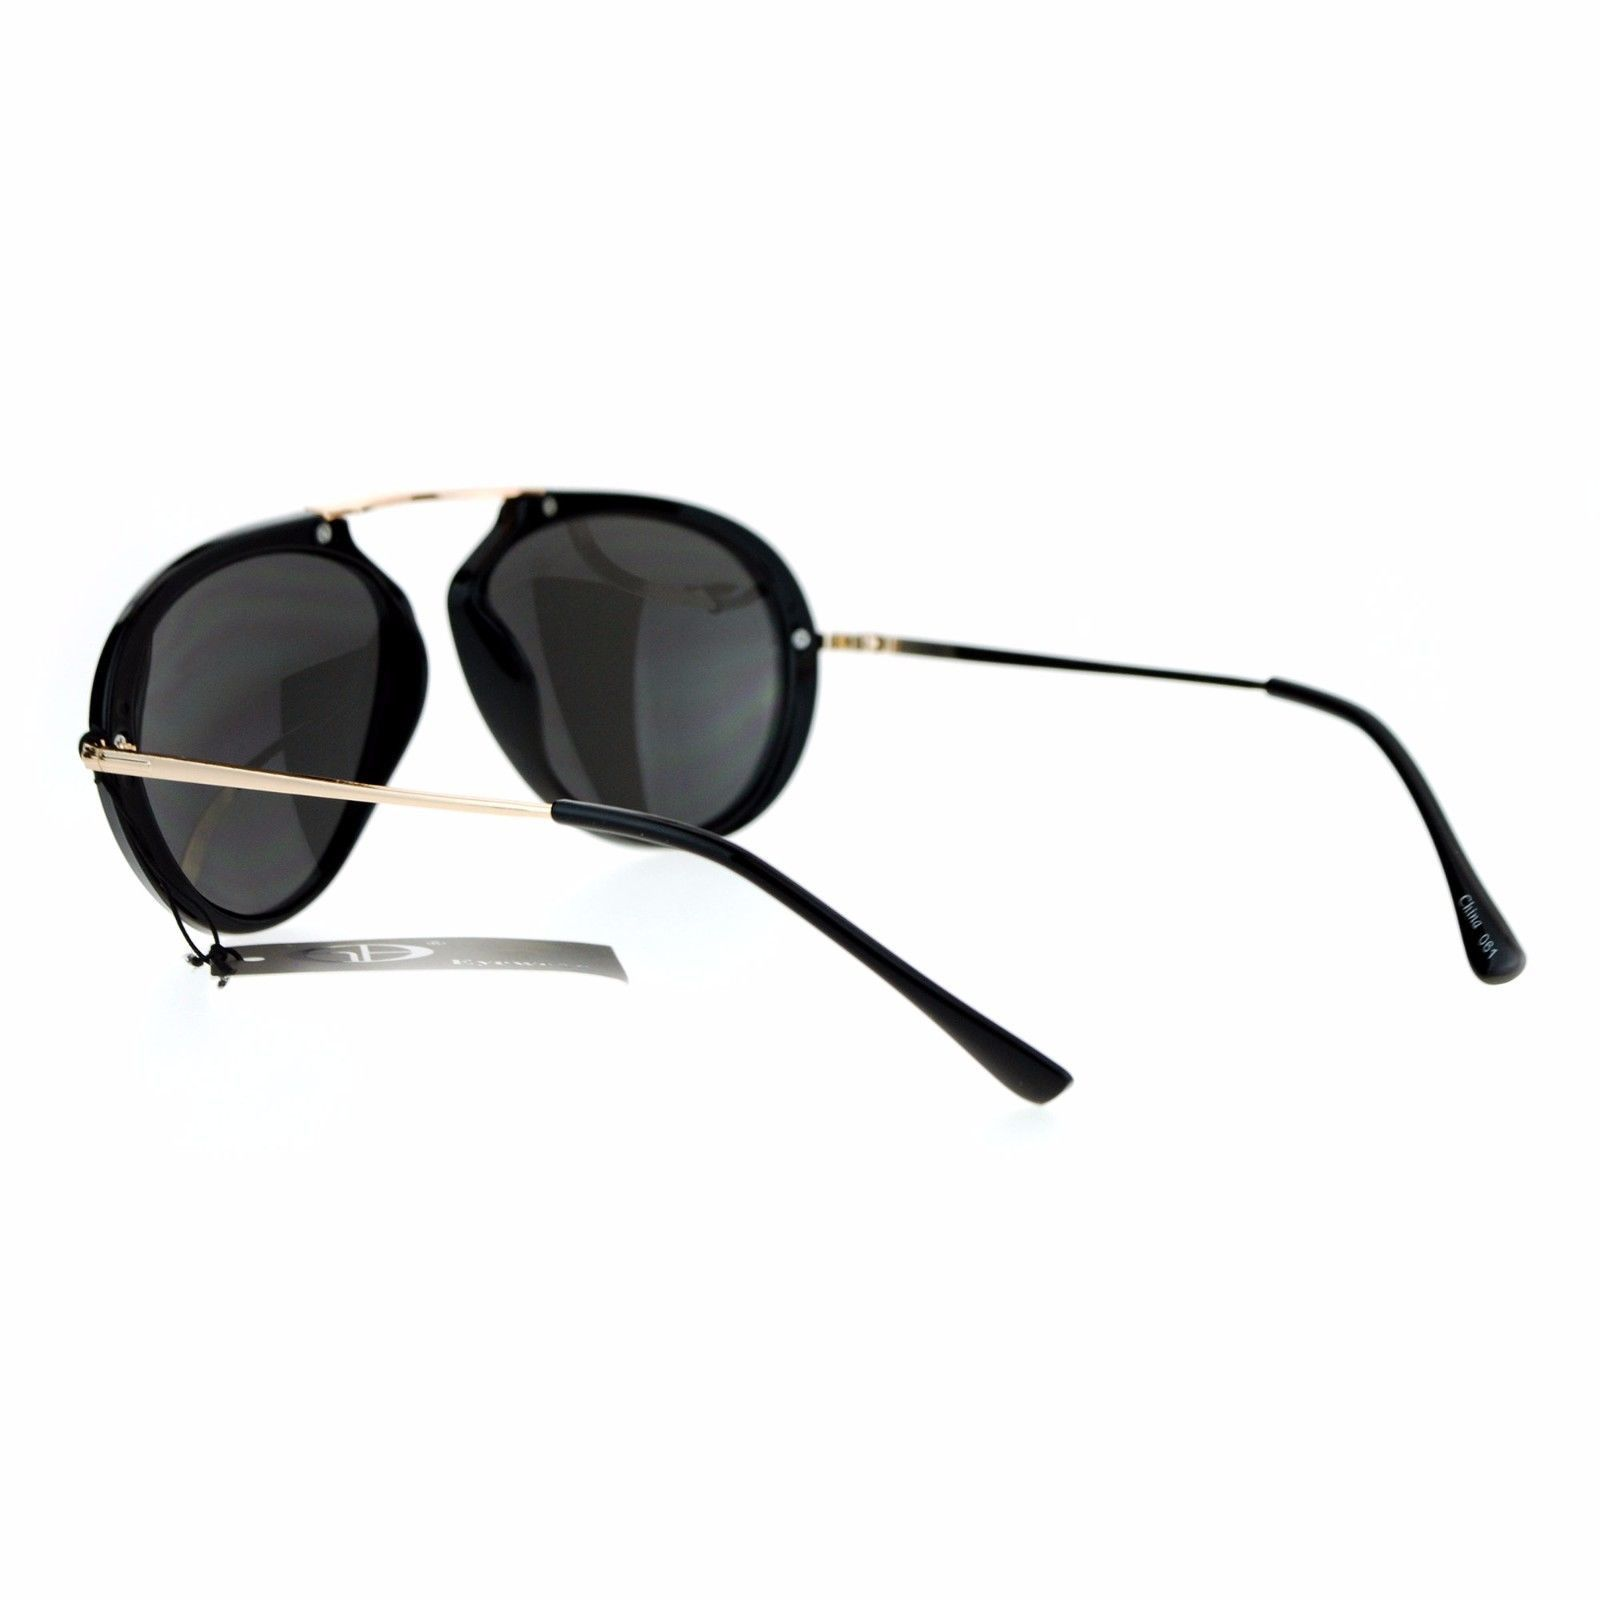 Vintage Fashion Aviator Sunglasses Womens Retro Style Aviators UV 400